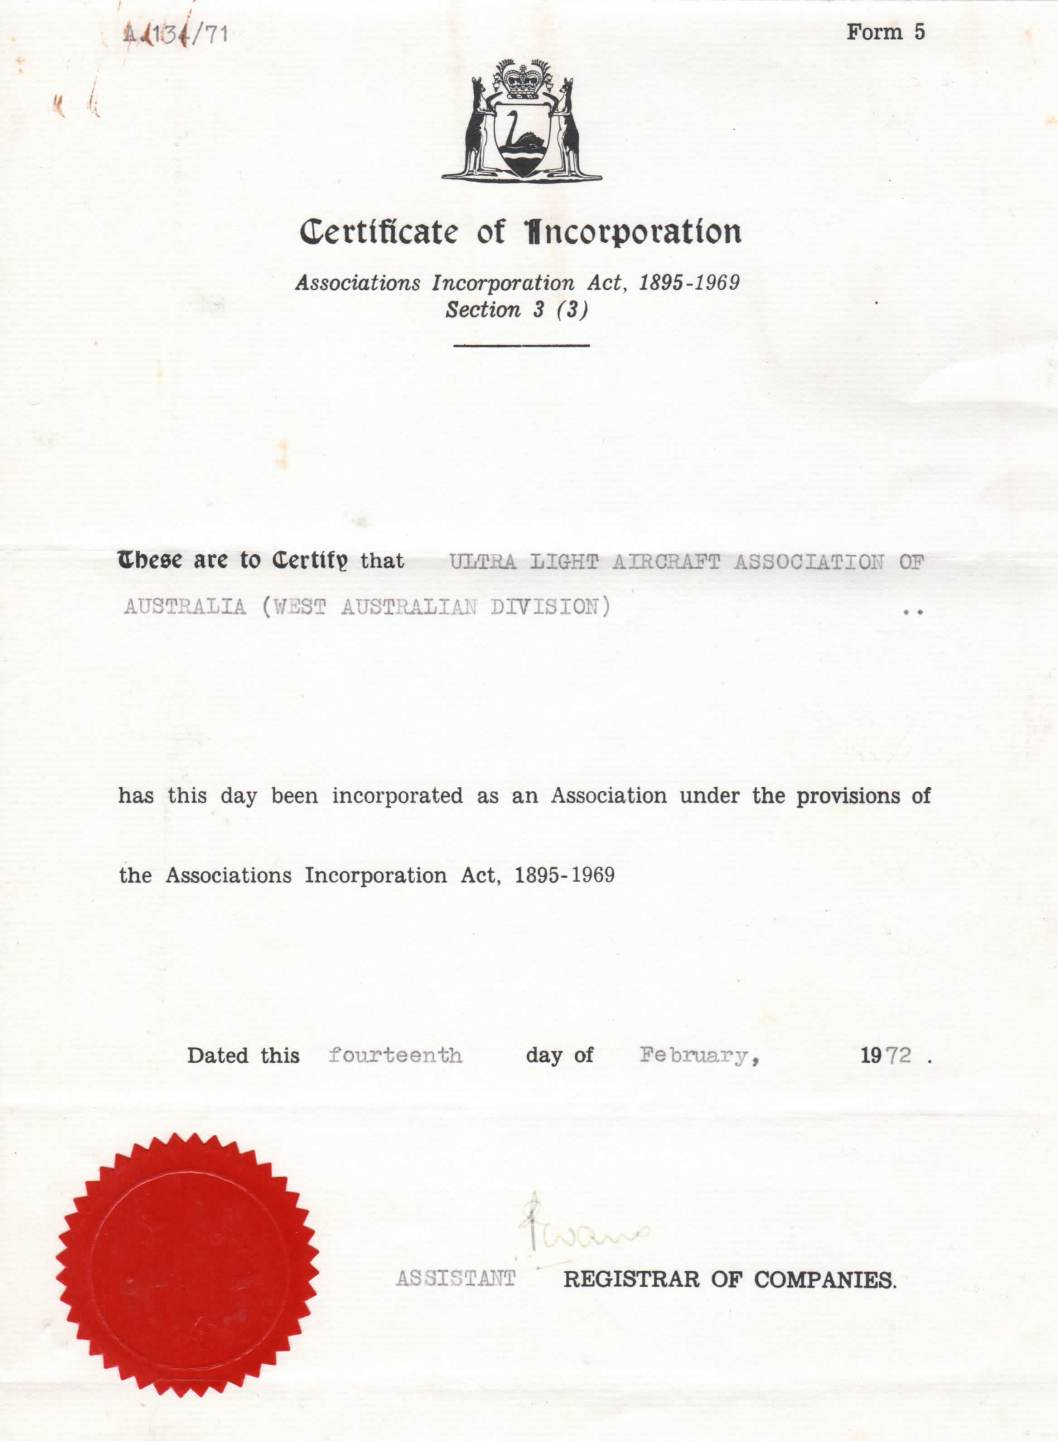 1972 cert of incorporation